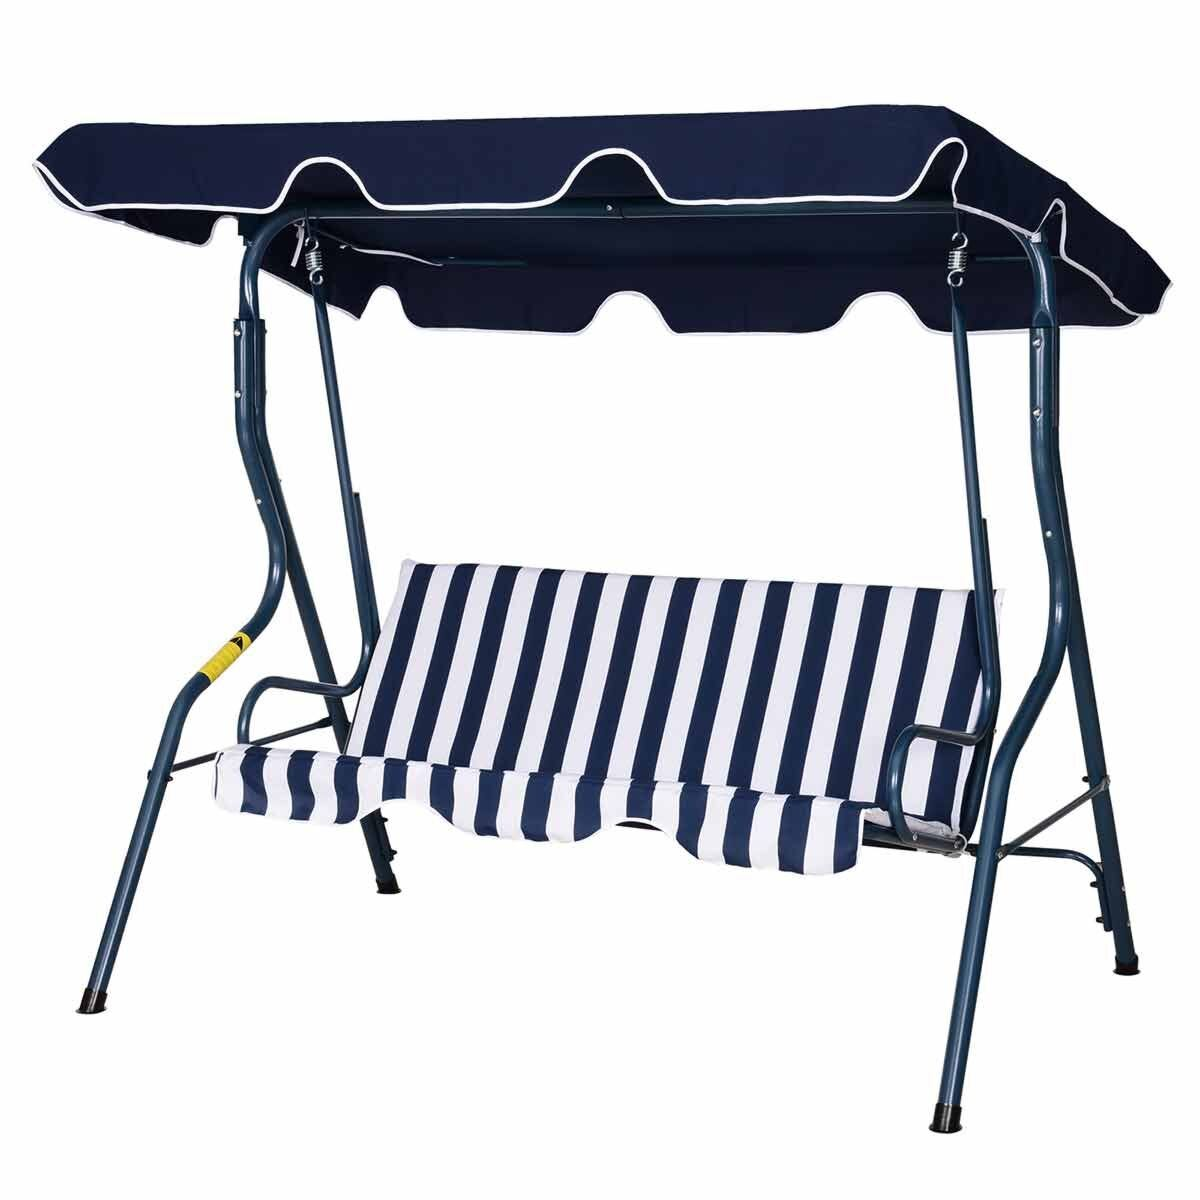 Alfresco Premium 3 Seater Swing Chair with Canopy Blue